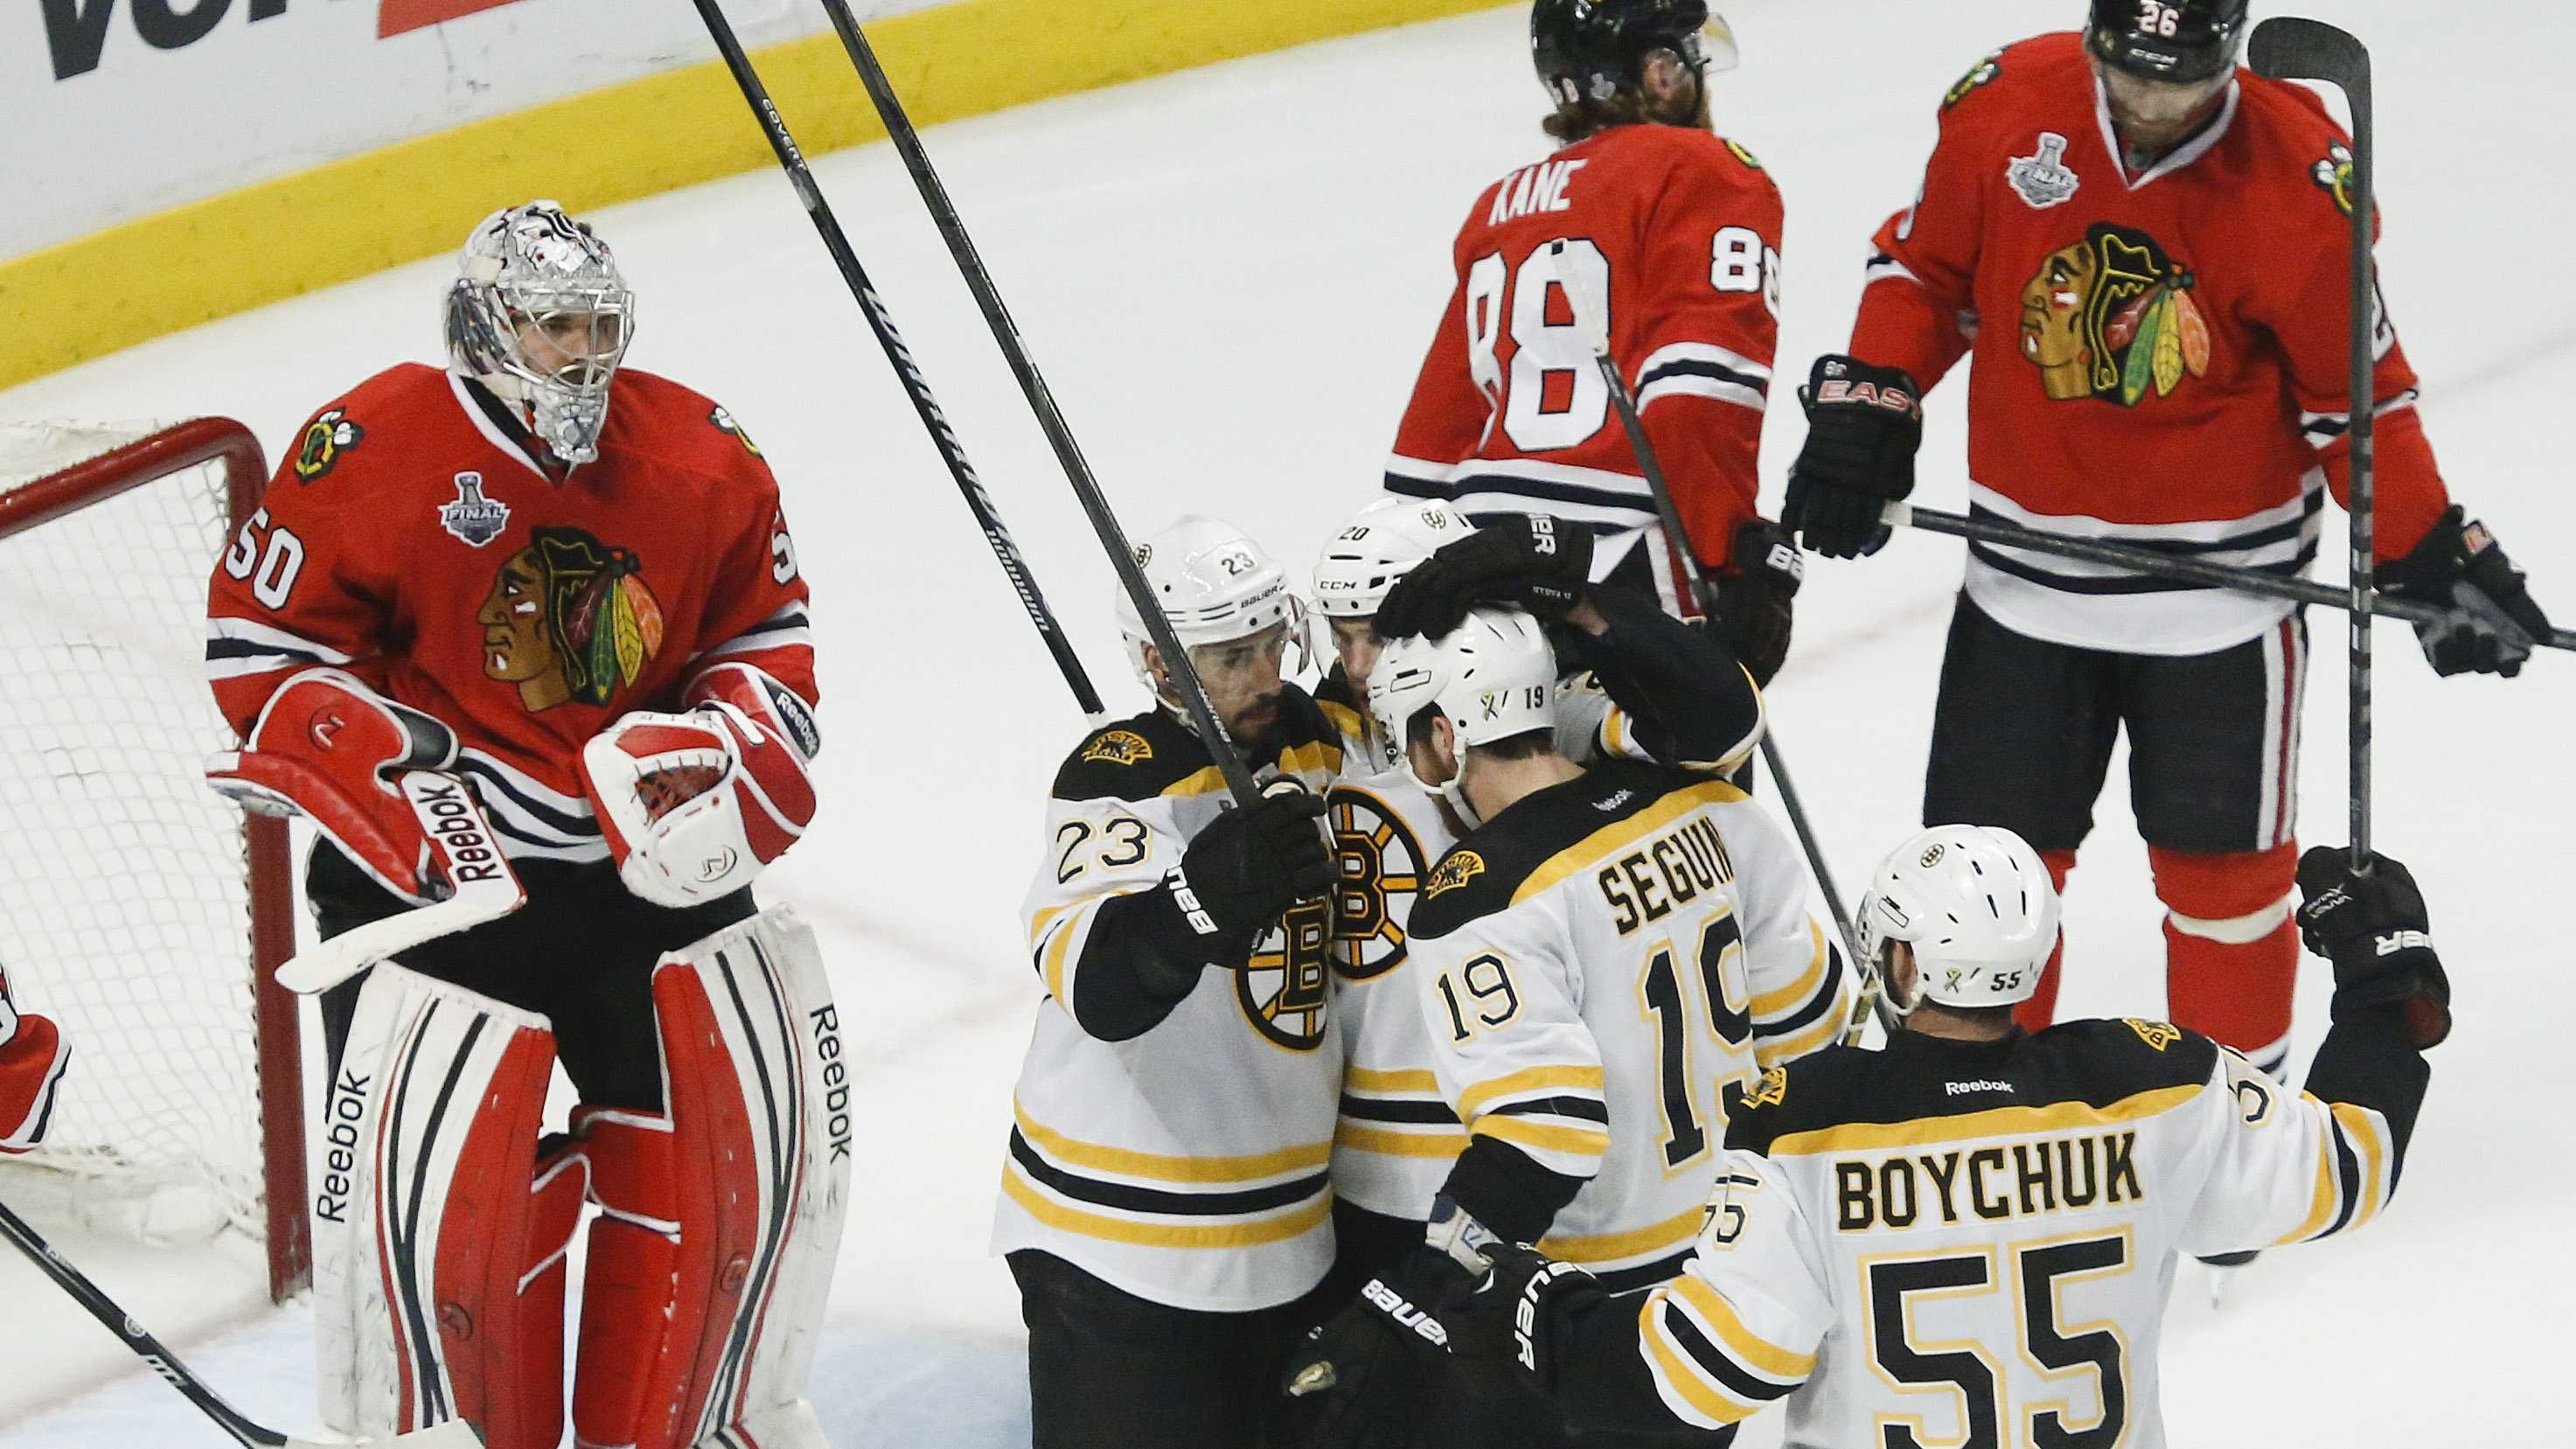 Bruins  celebrate goal vs Blackhawks 061513